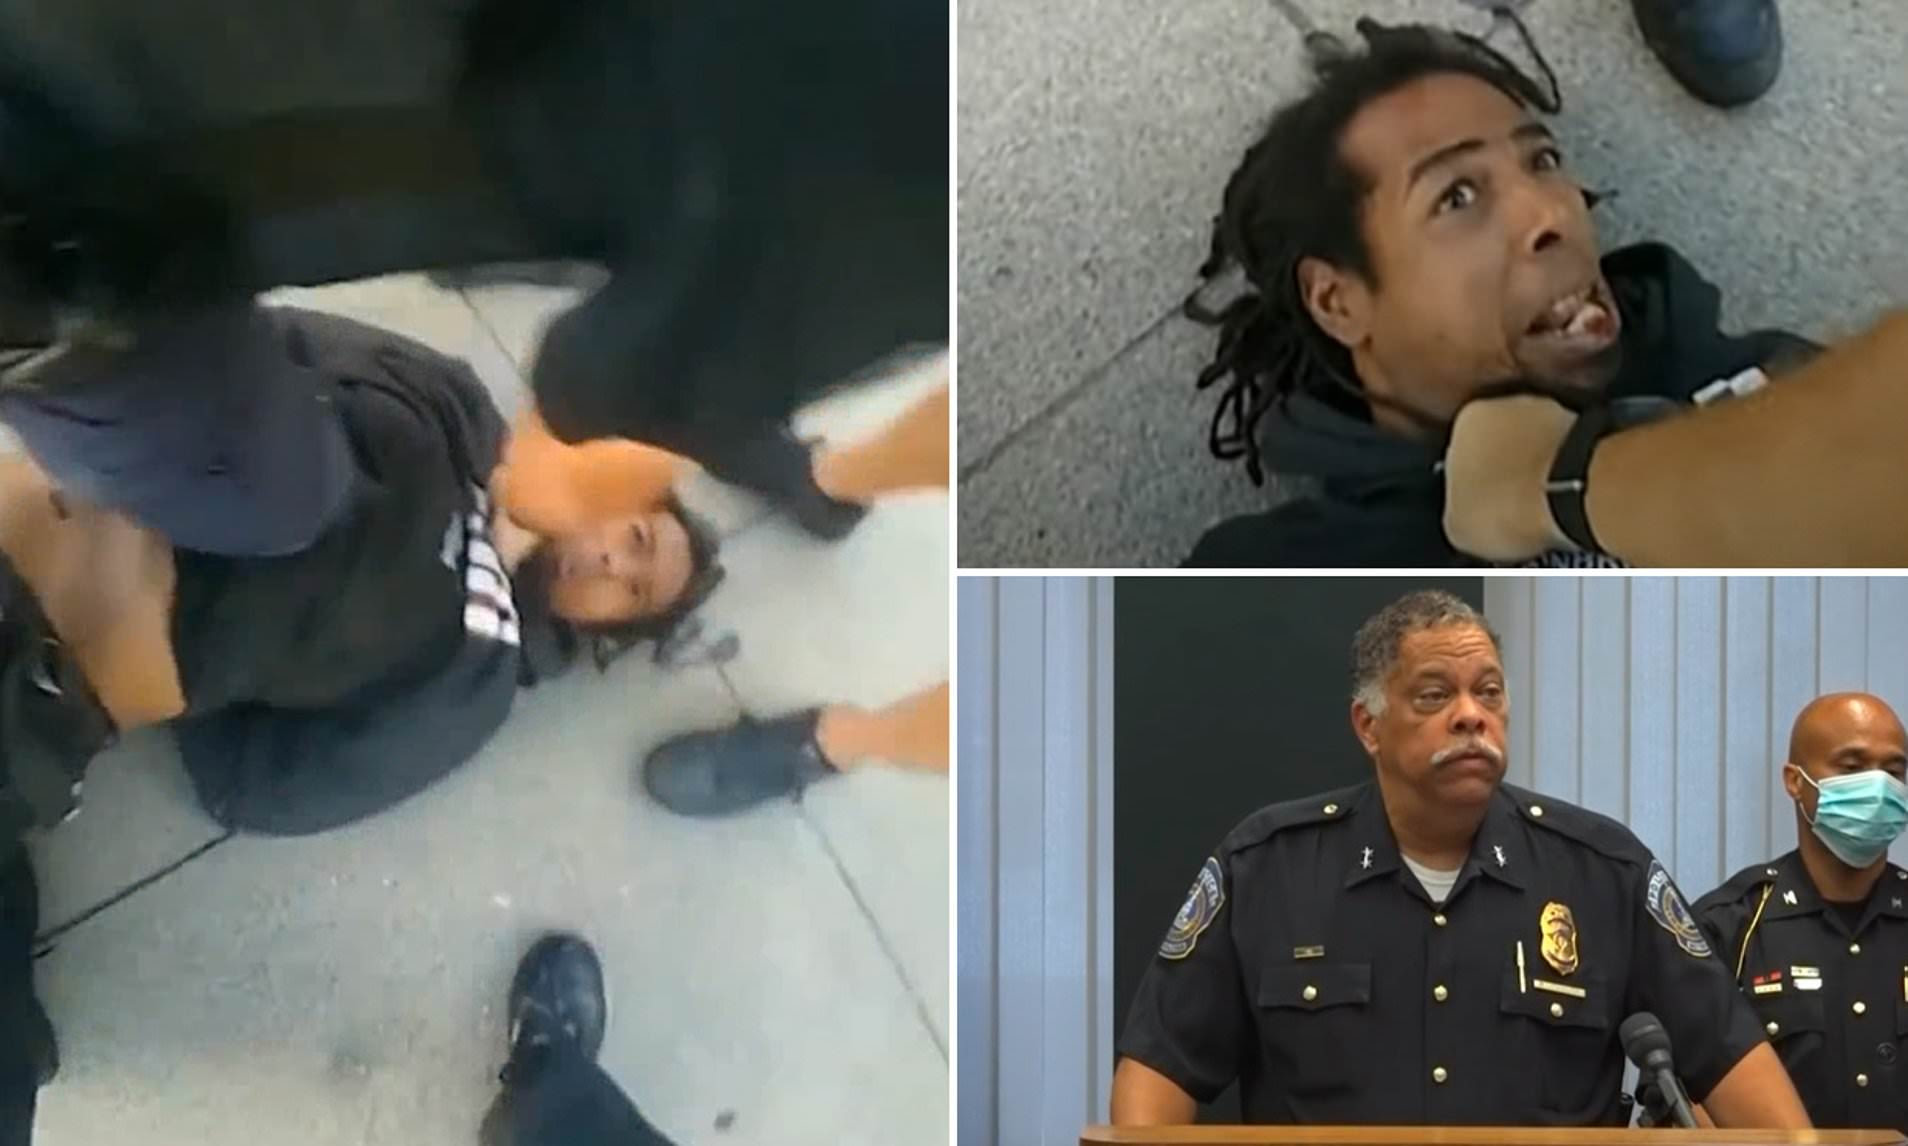 Indiana cop faces criminal charges after STOMPING on man's face